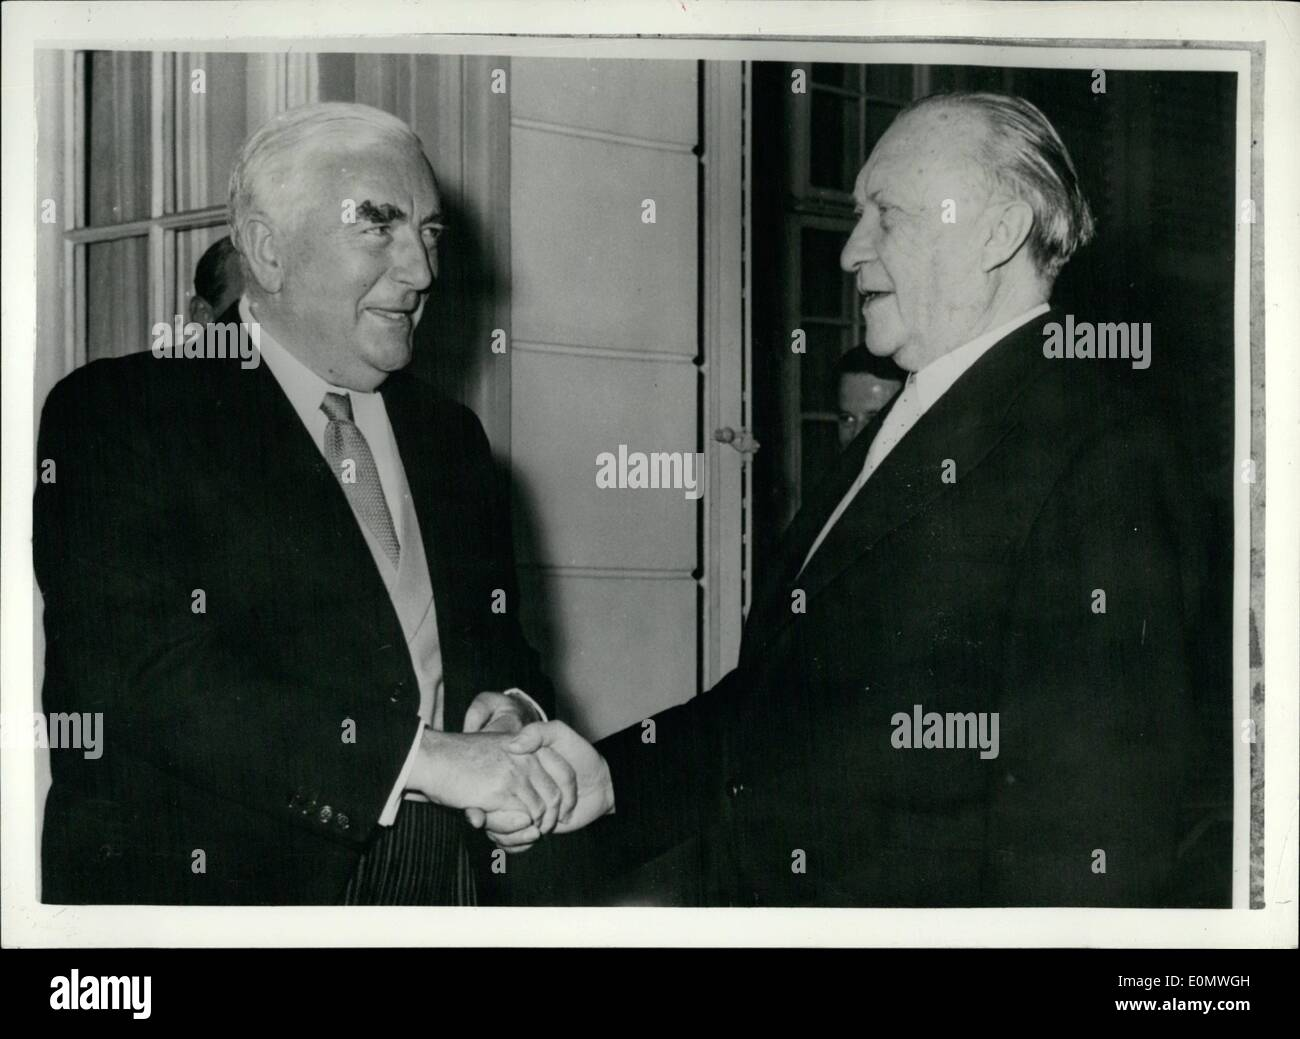 robert gordon menzies Conclusion: sir robert gordon menzies is a prime example of patriot, representative of all australians and a man who didn't resort to popular phrases or statements, when sir robert said something then he went through with it, ensuring that the best interests of all australians be the prime priority at all times.